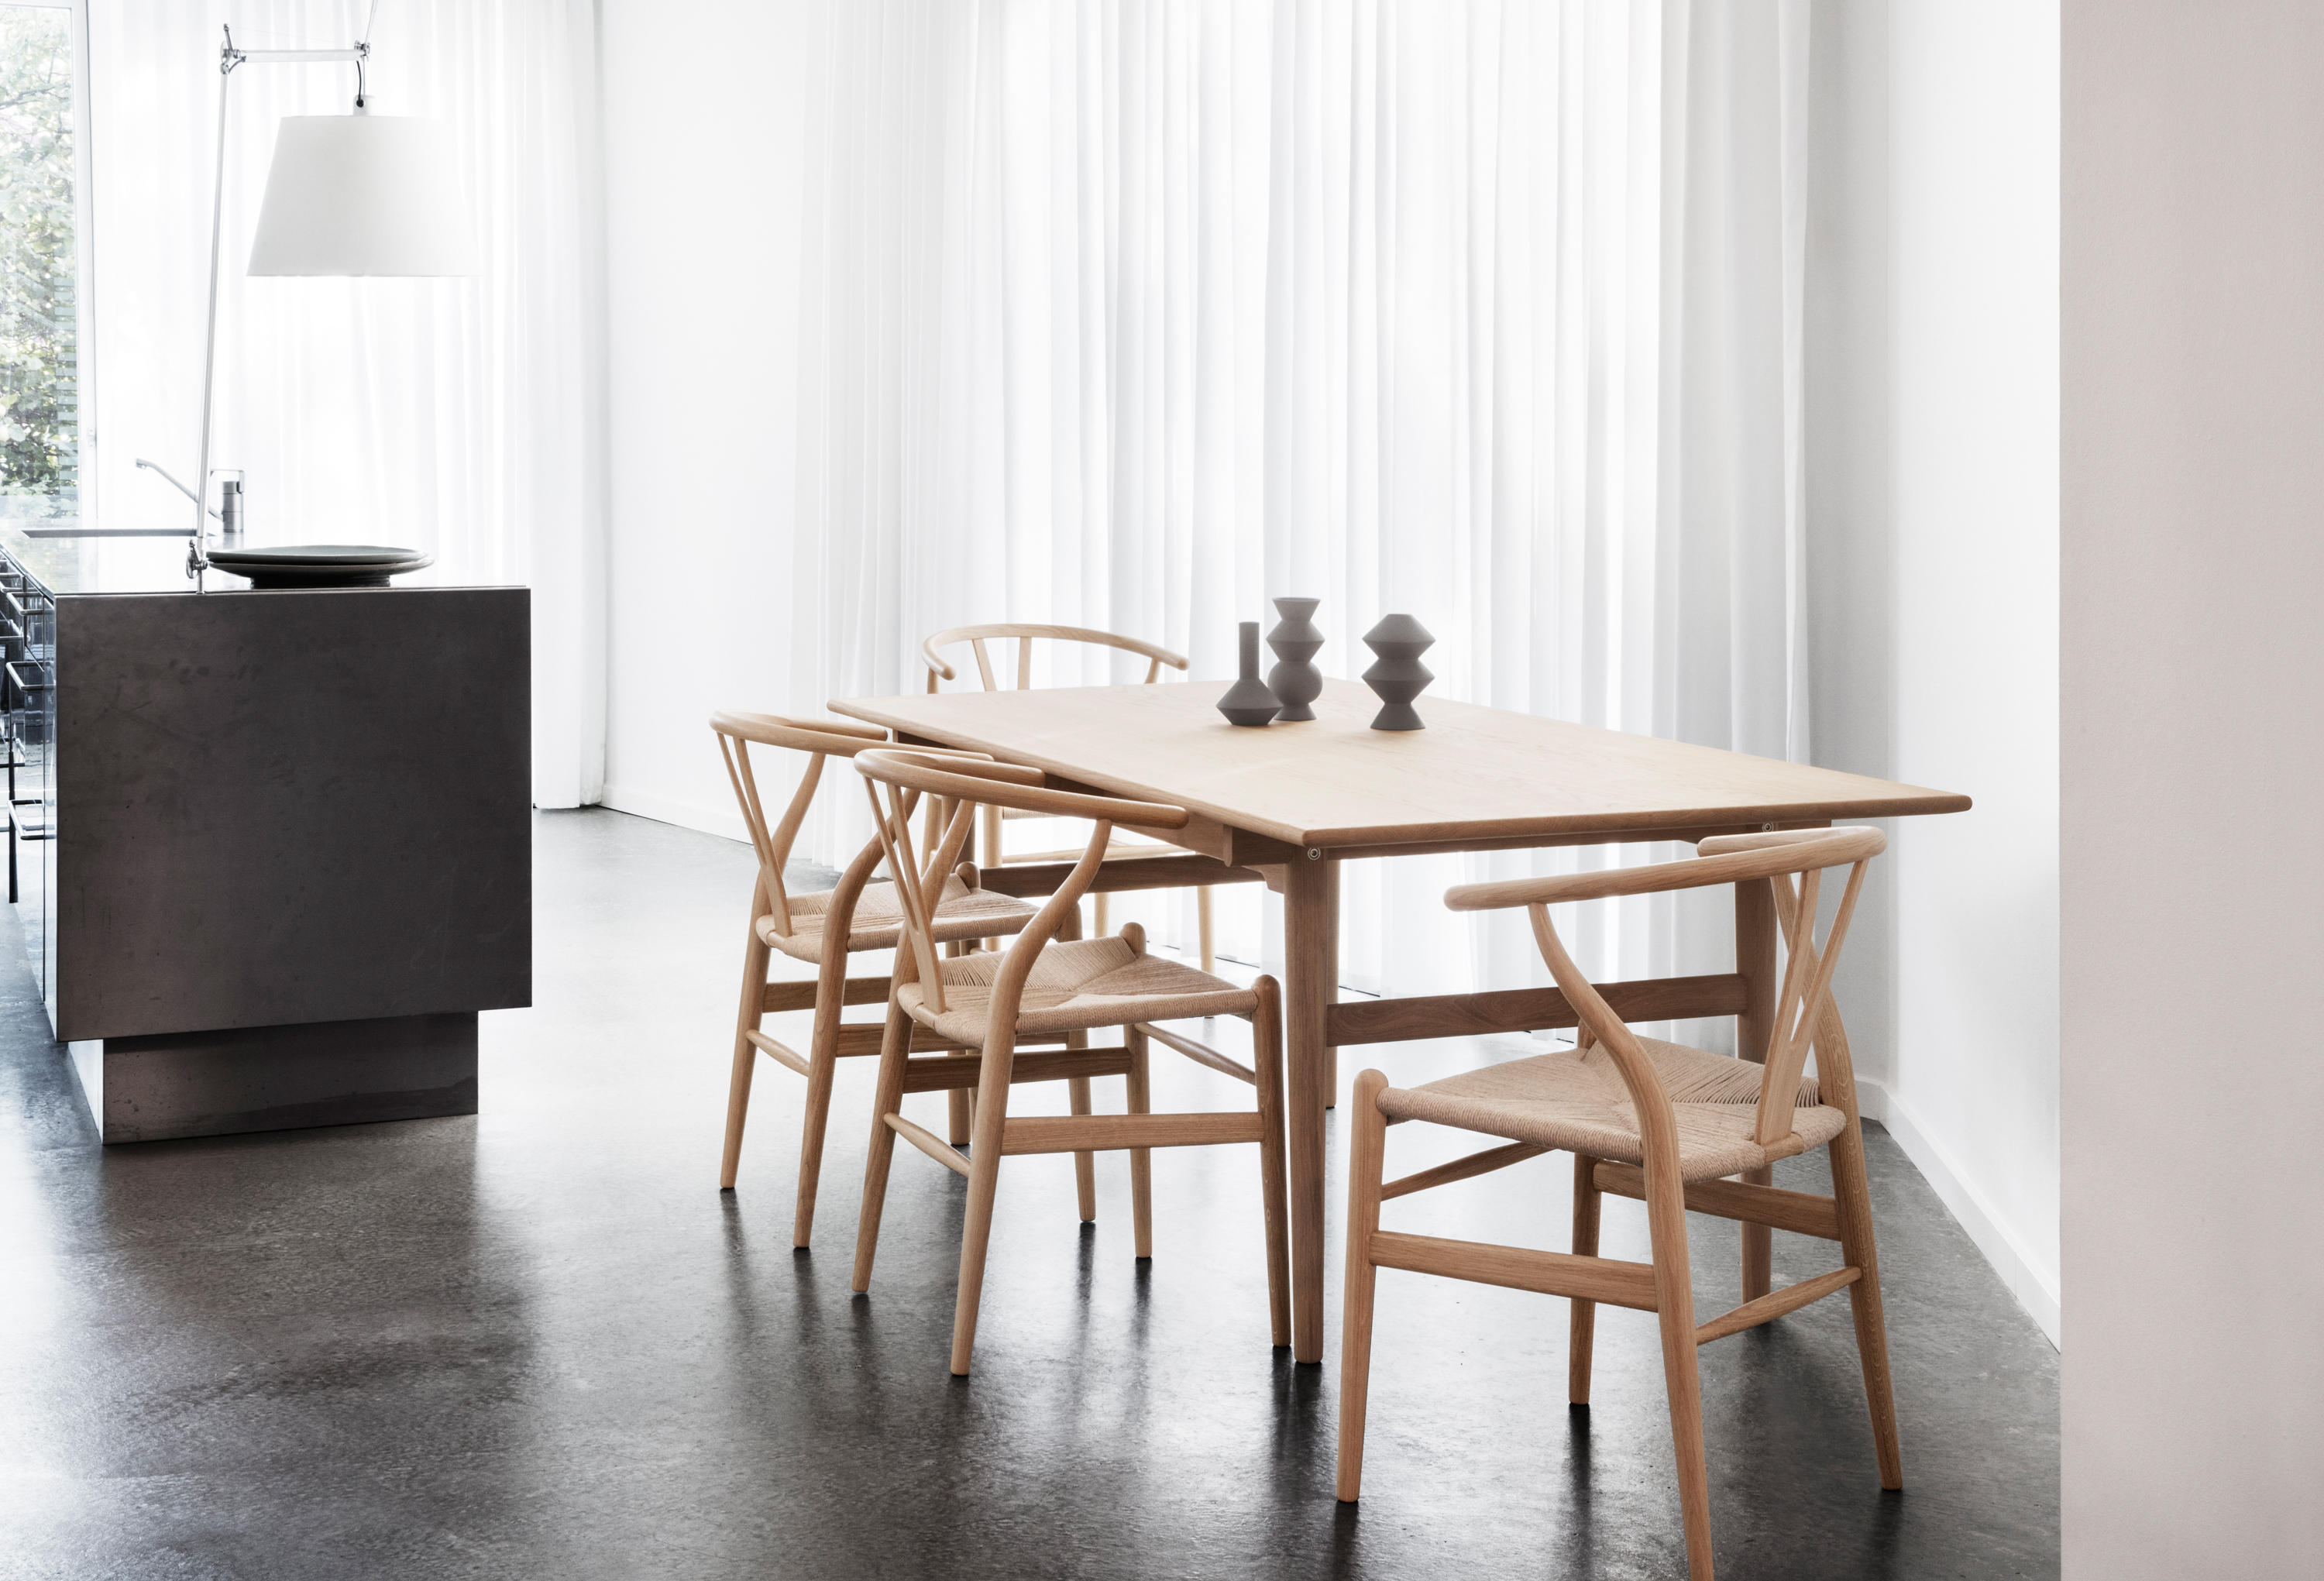 CH24 Restaurant chairs from Carl Hansen & S¸n